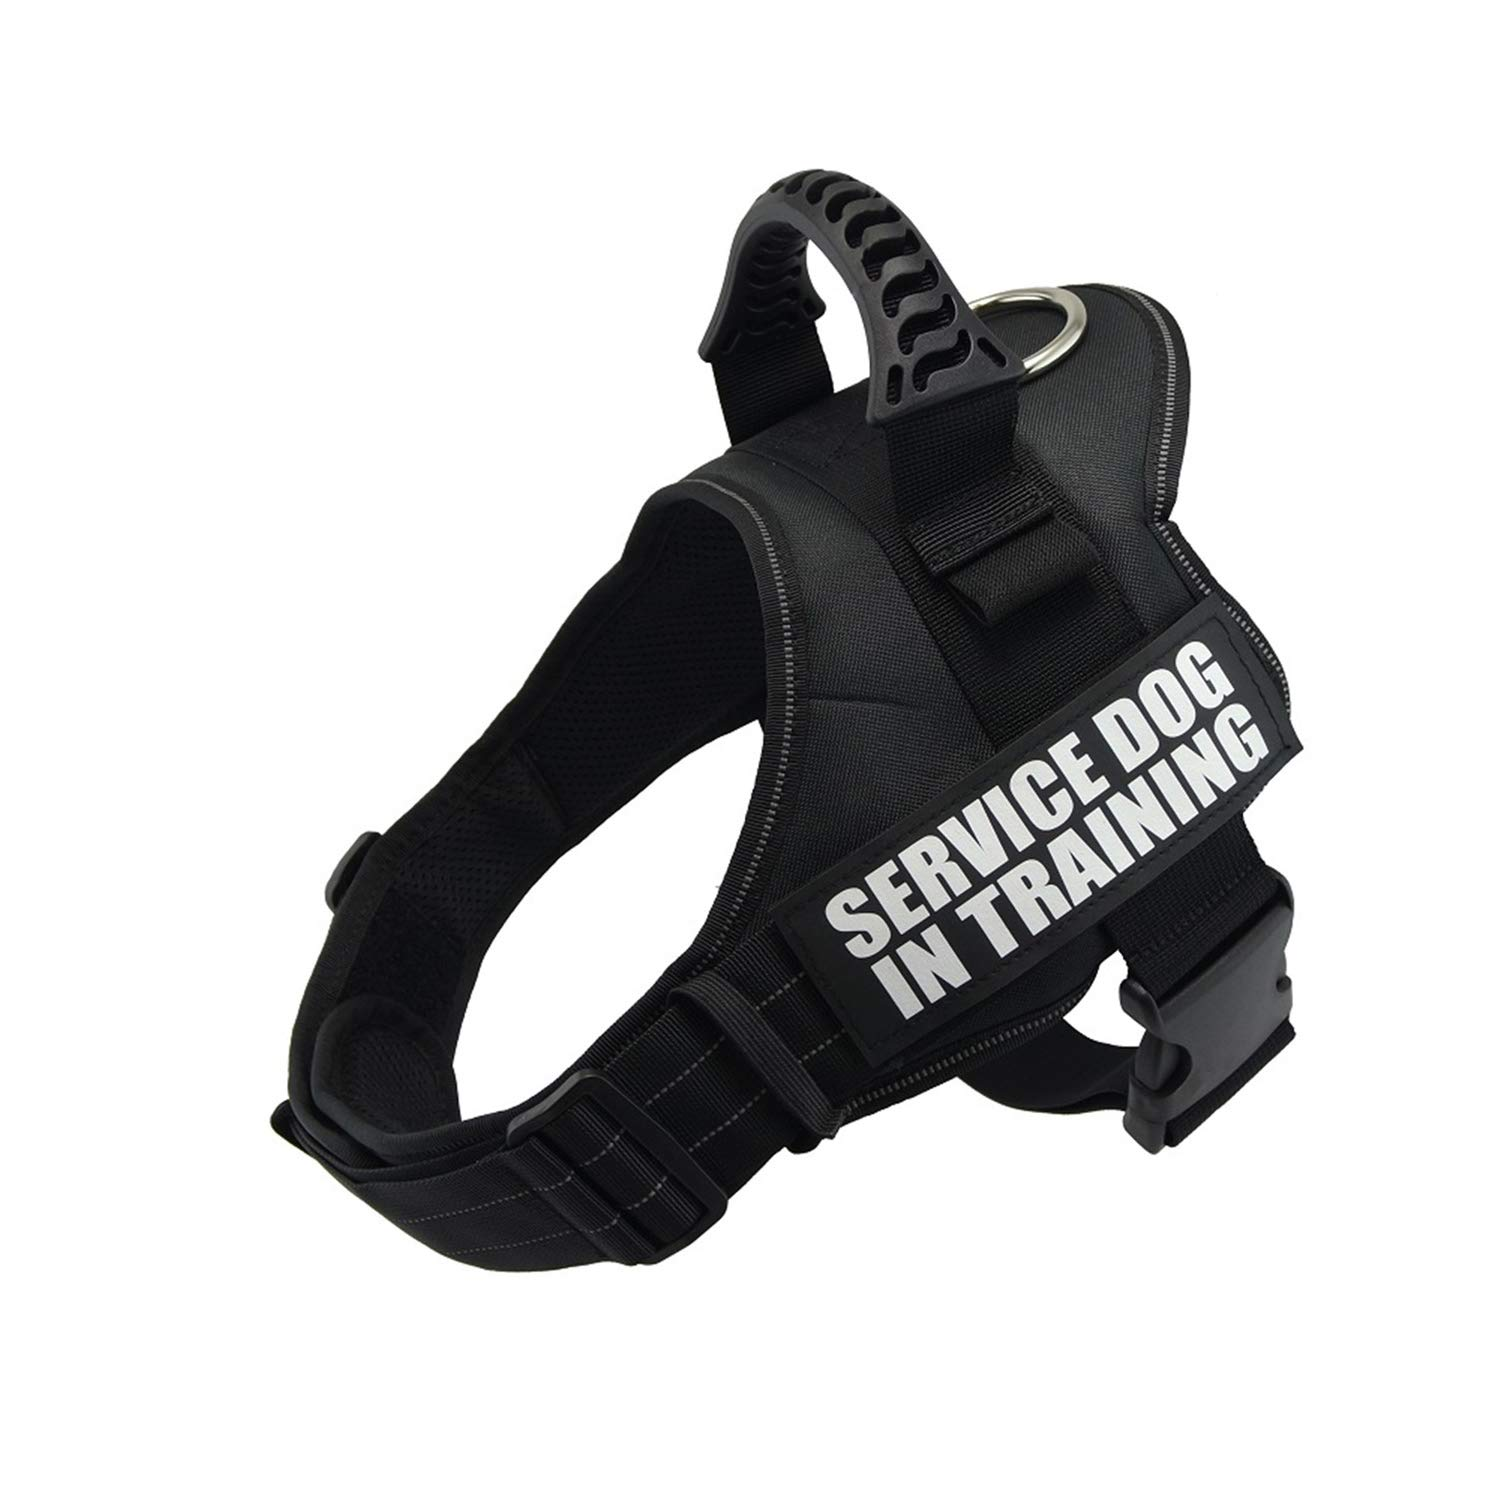 As picture show5 XLPEHTEN Dog Harnesses for Large Dogs Supplies Vests Pet Products Factory Price for Dog All Pet Harness for Cats for Pet Dogs Collar show3 M